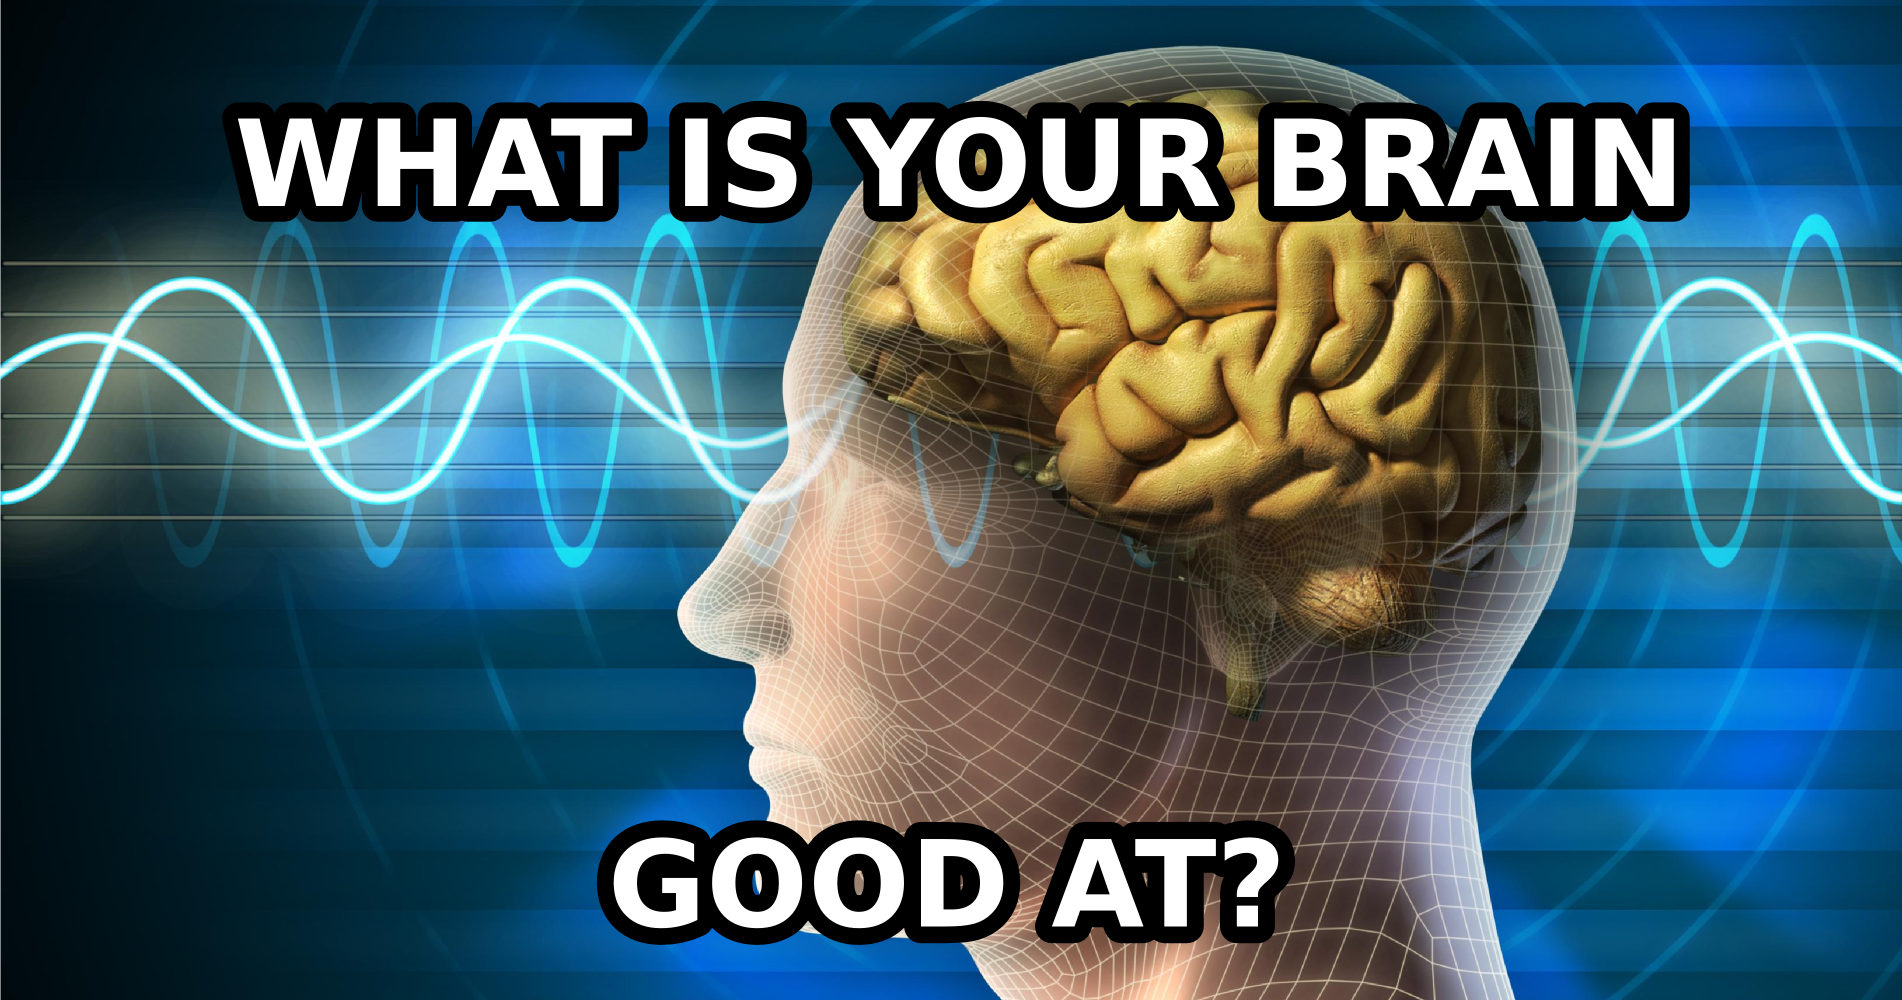 I Got 'Logical Thinking' - What Is Your Brain Good At?